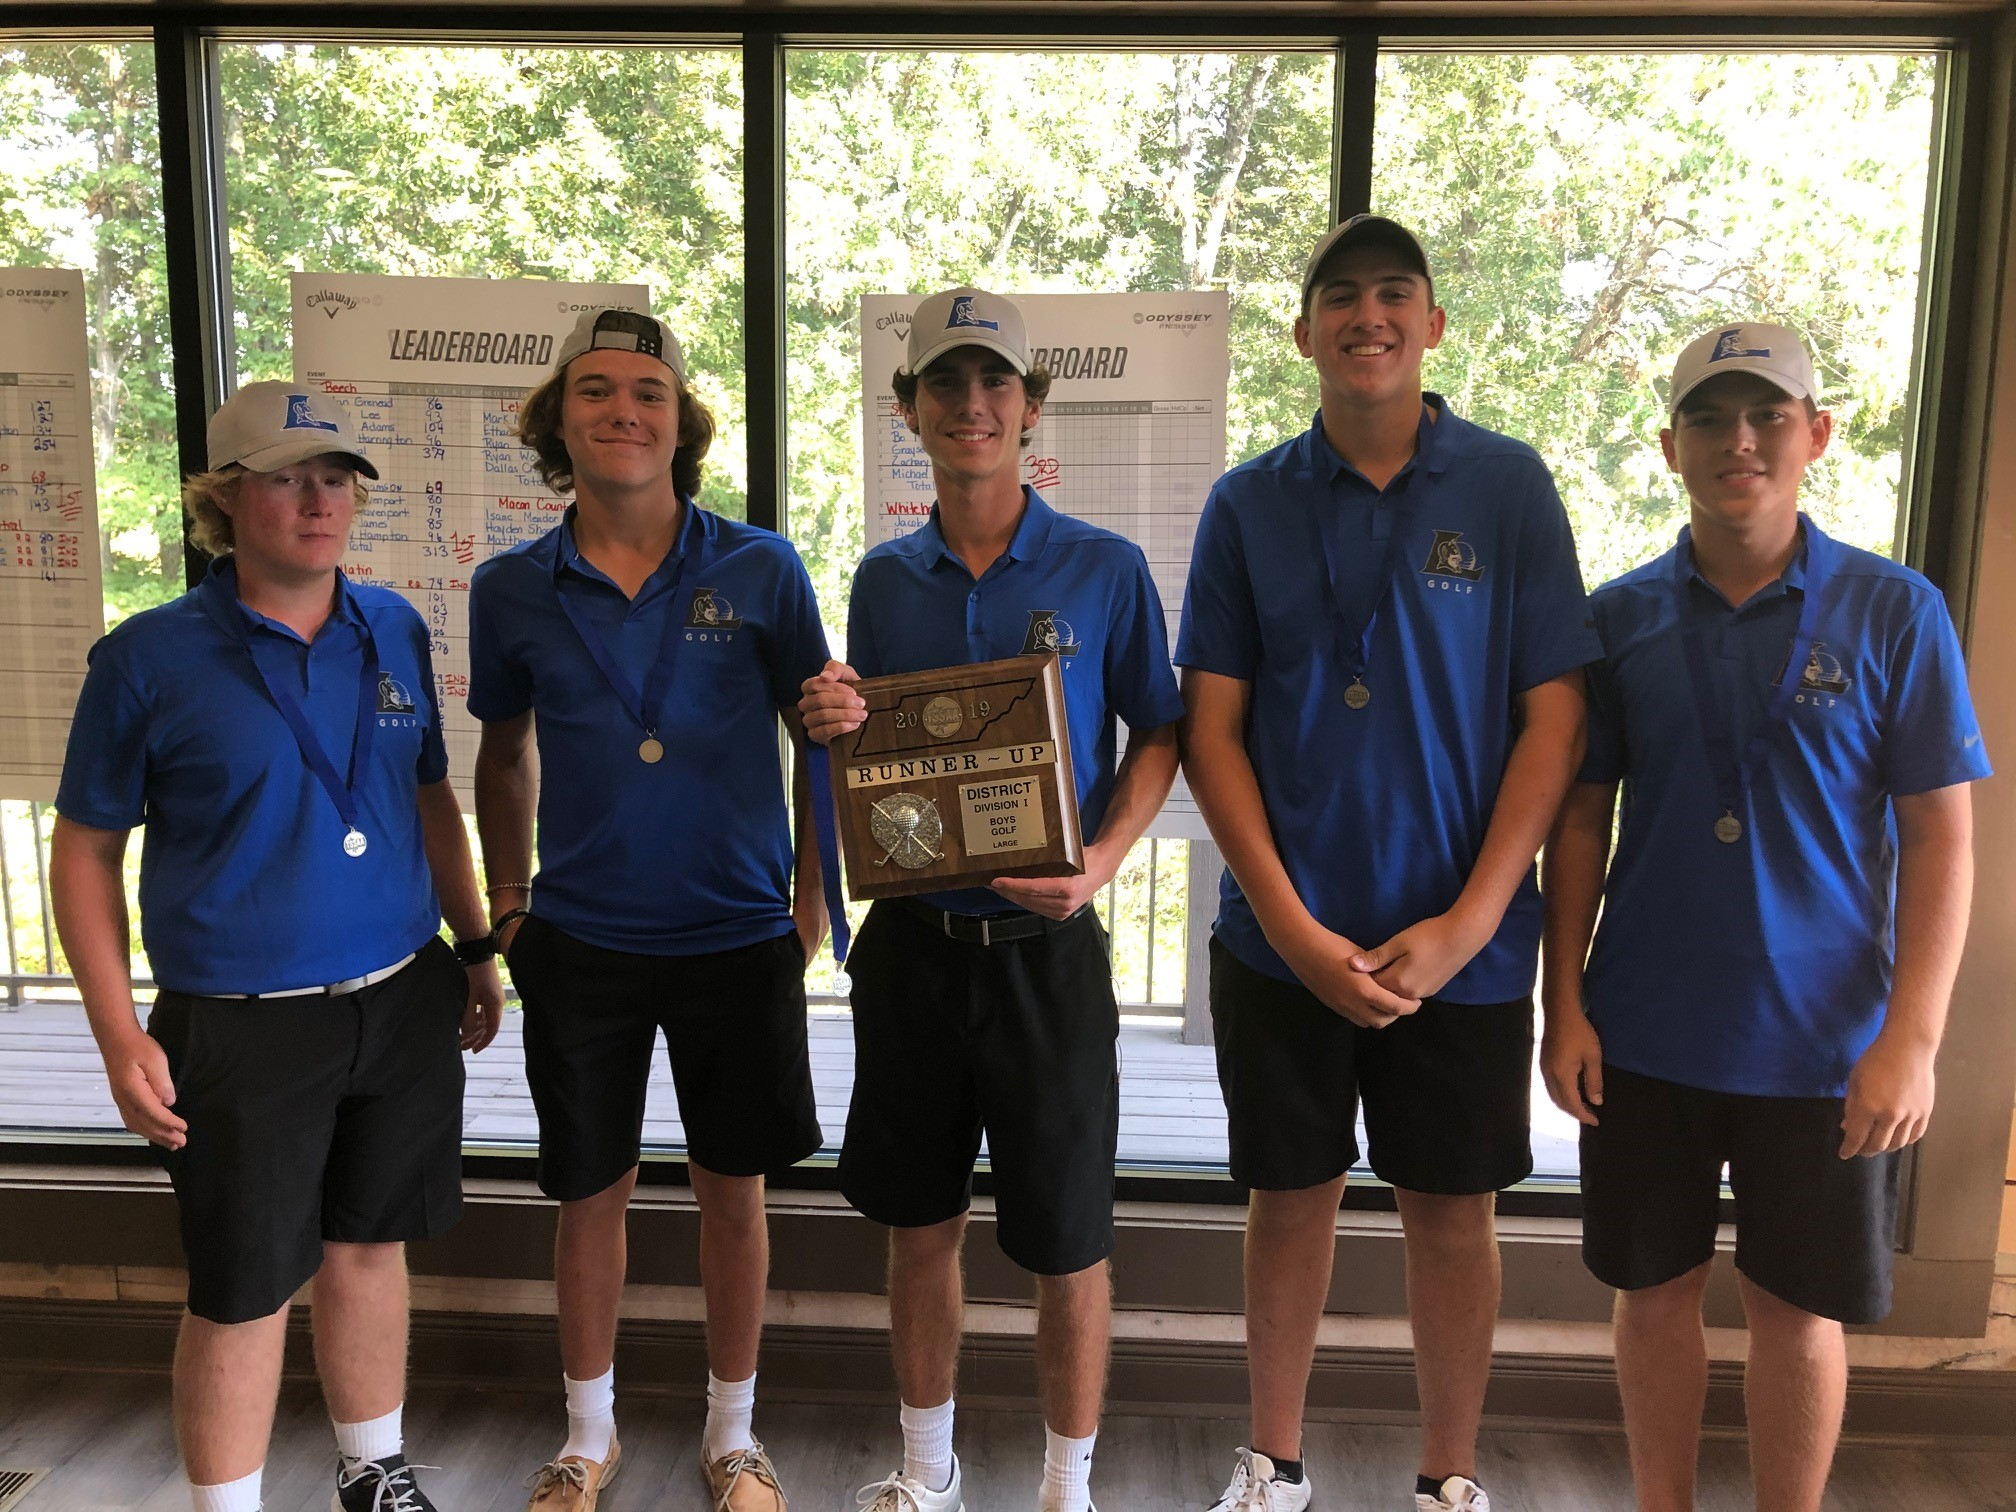 Congratulations to the Boys Golf Team-They will advance to the Regional Tournament on Monday, October 7th